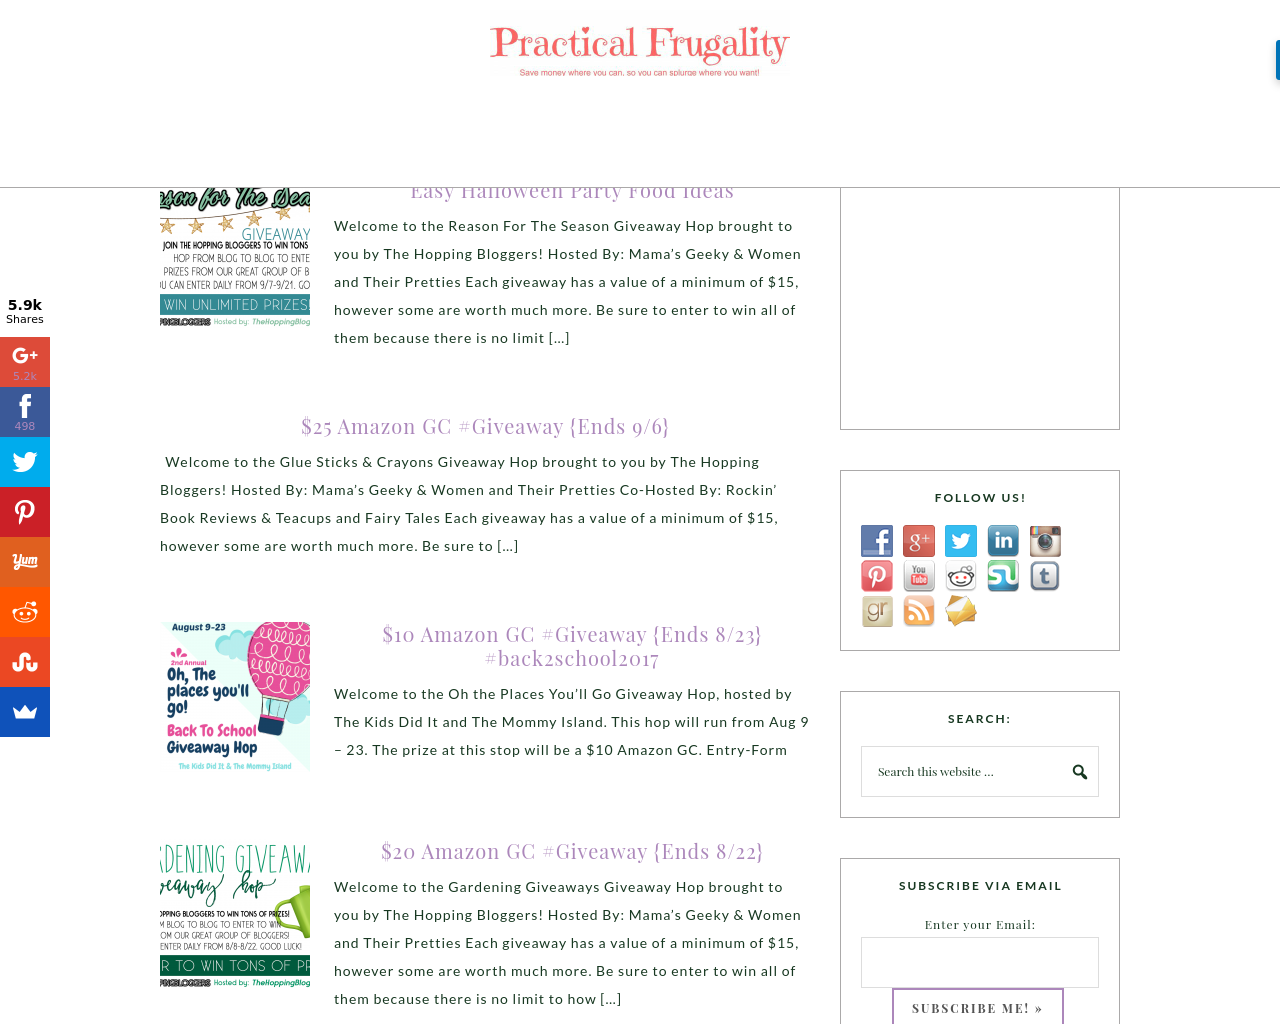 Practical-Frugality-Advertising-Reviews-Pricing